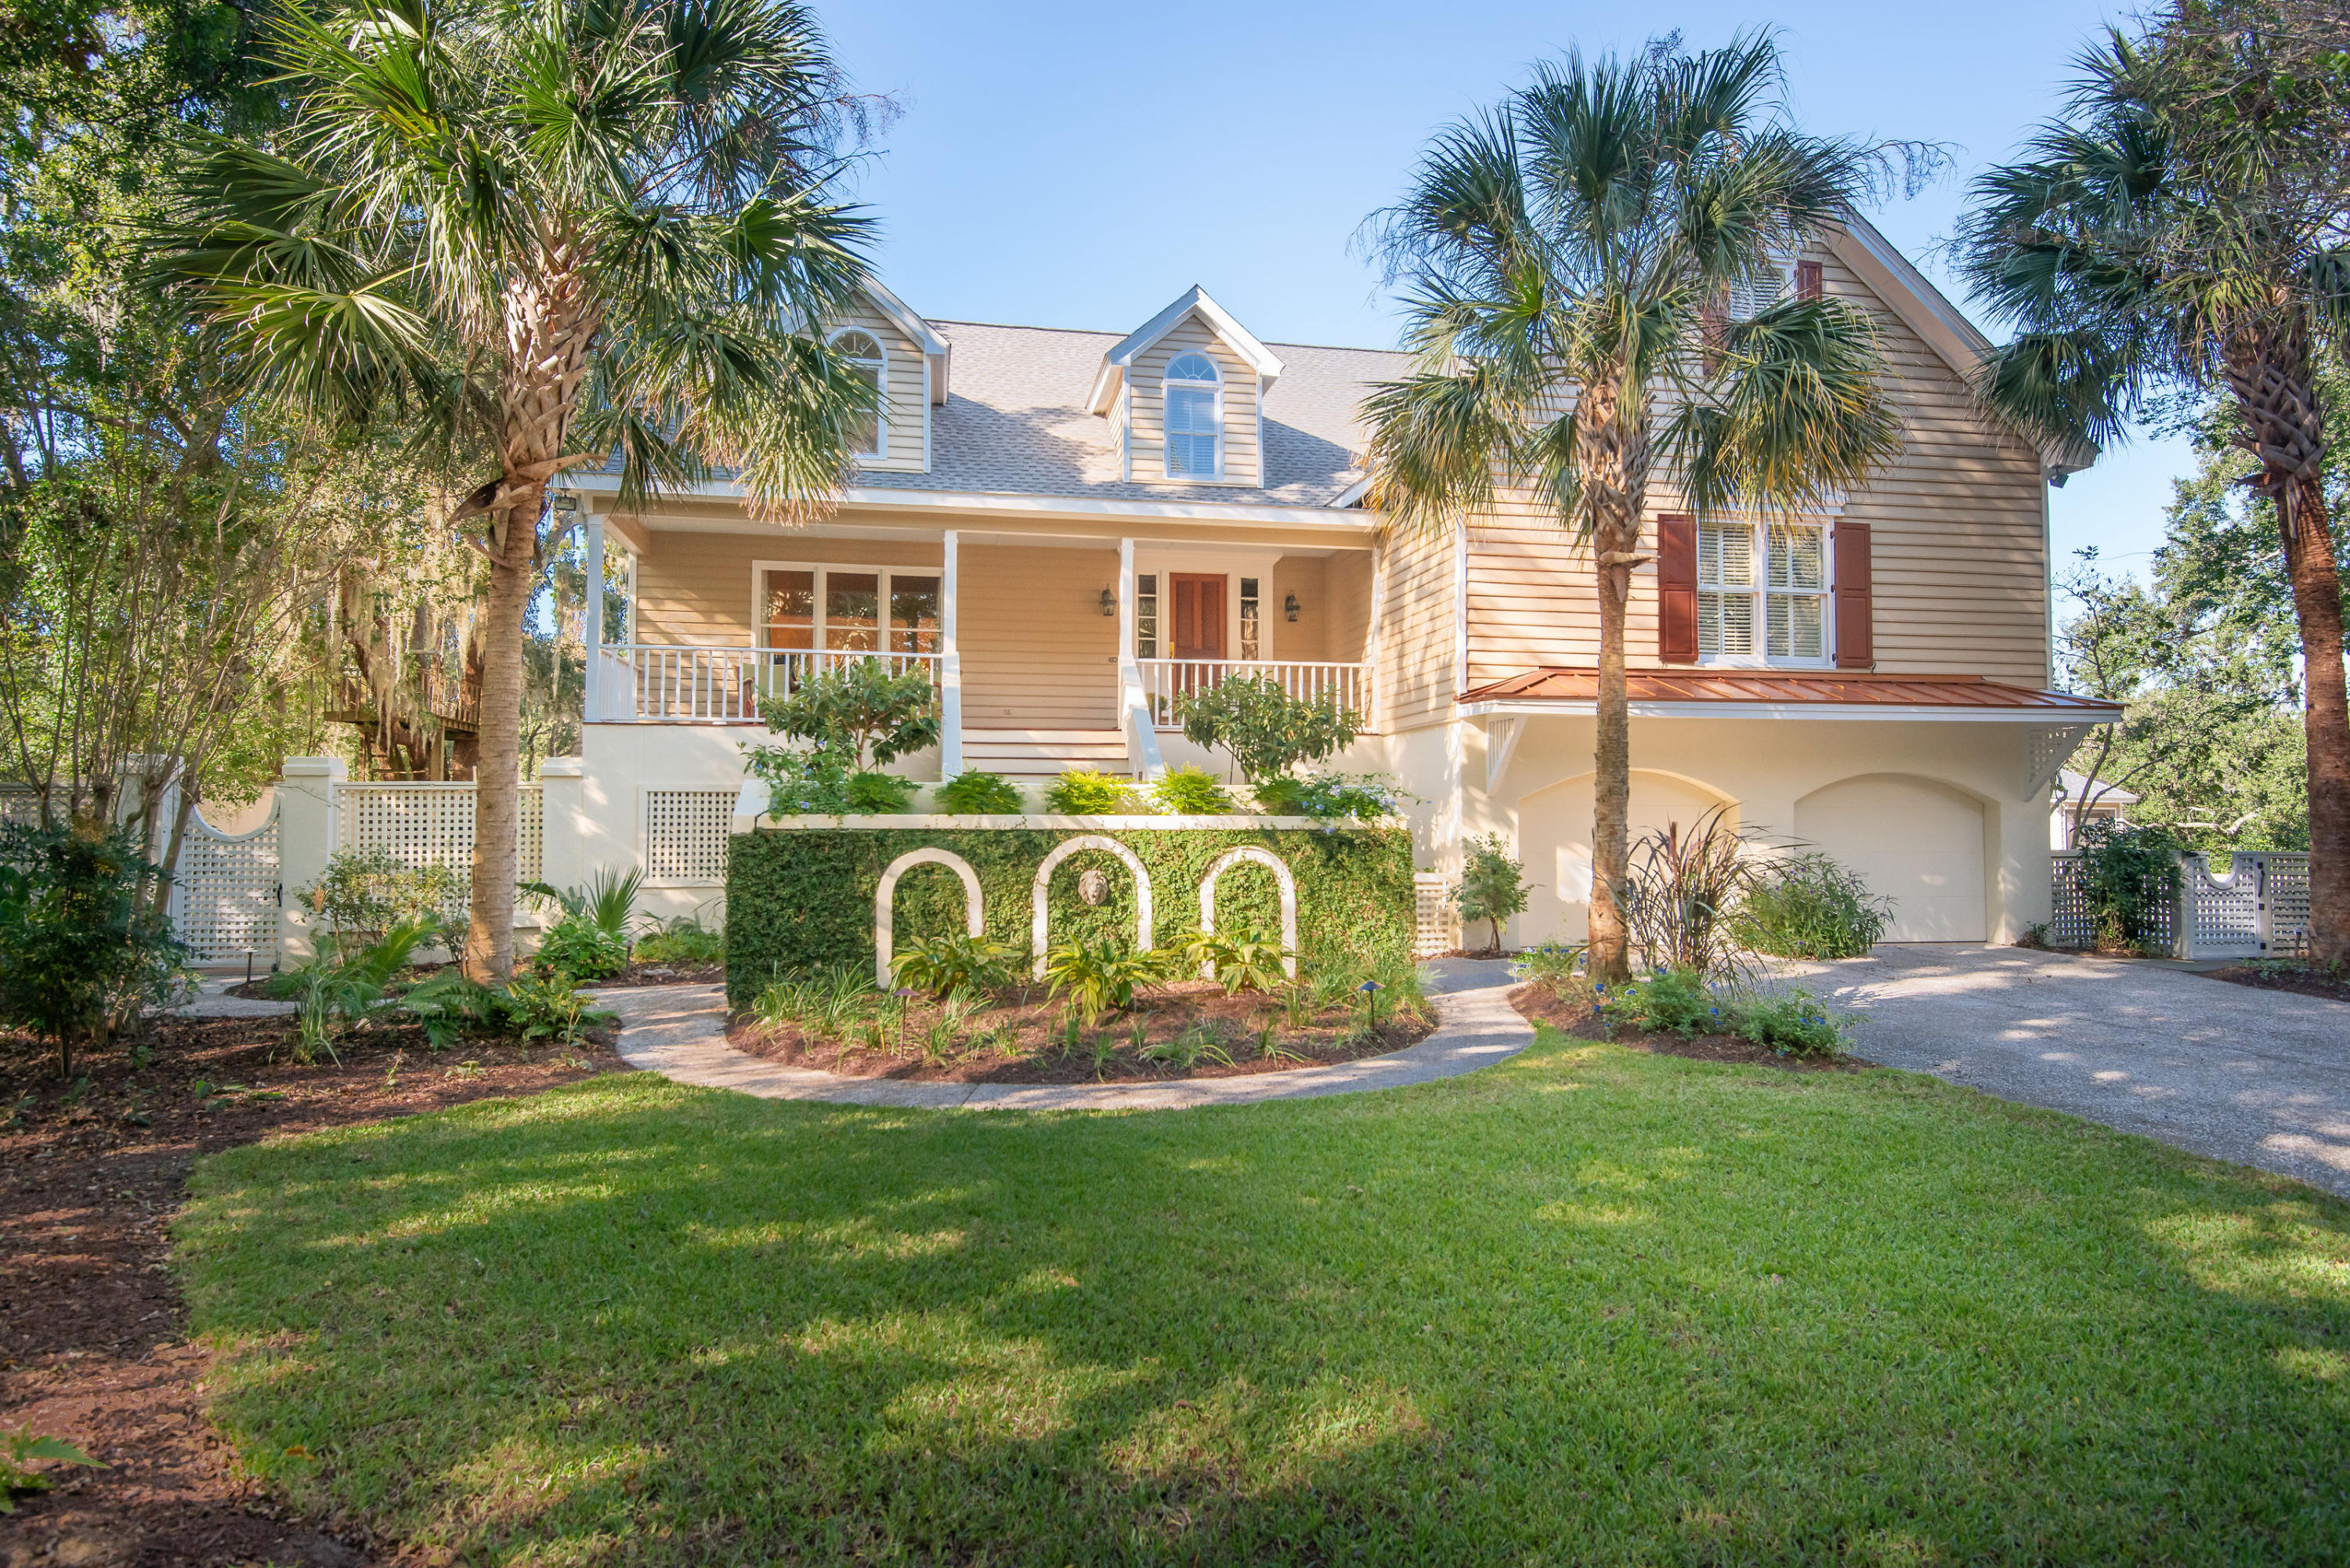 Riverland Terrace Homes For Sale - 2186 Wappoo Hall, Charleston, SC - 11